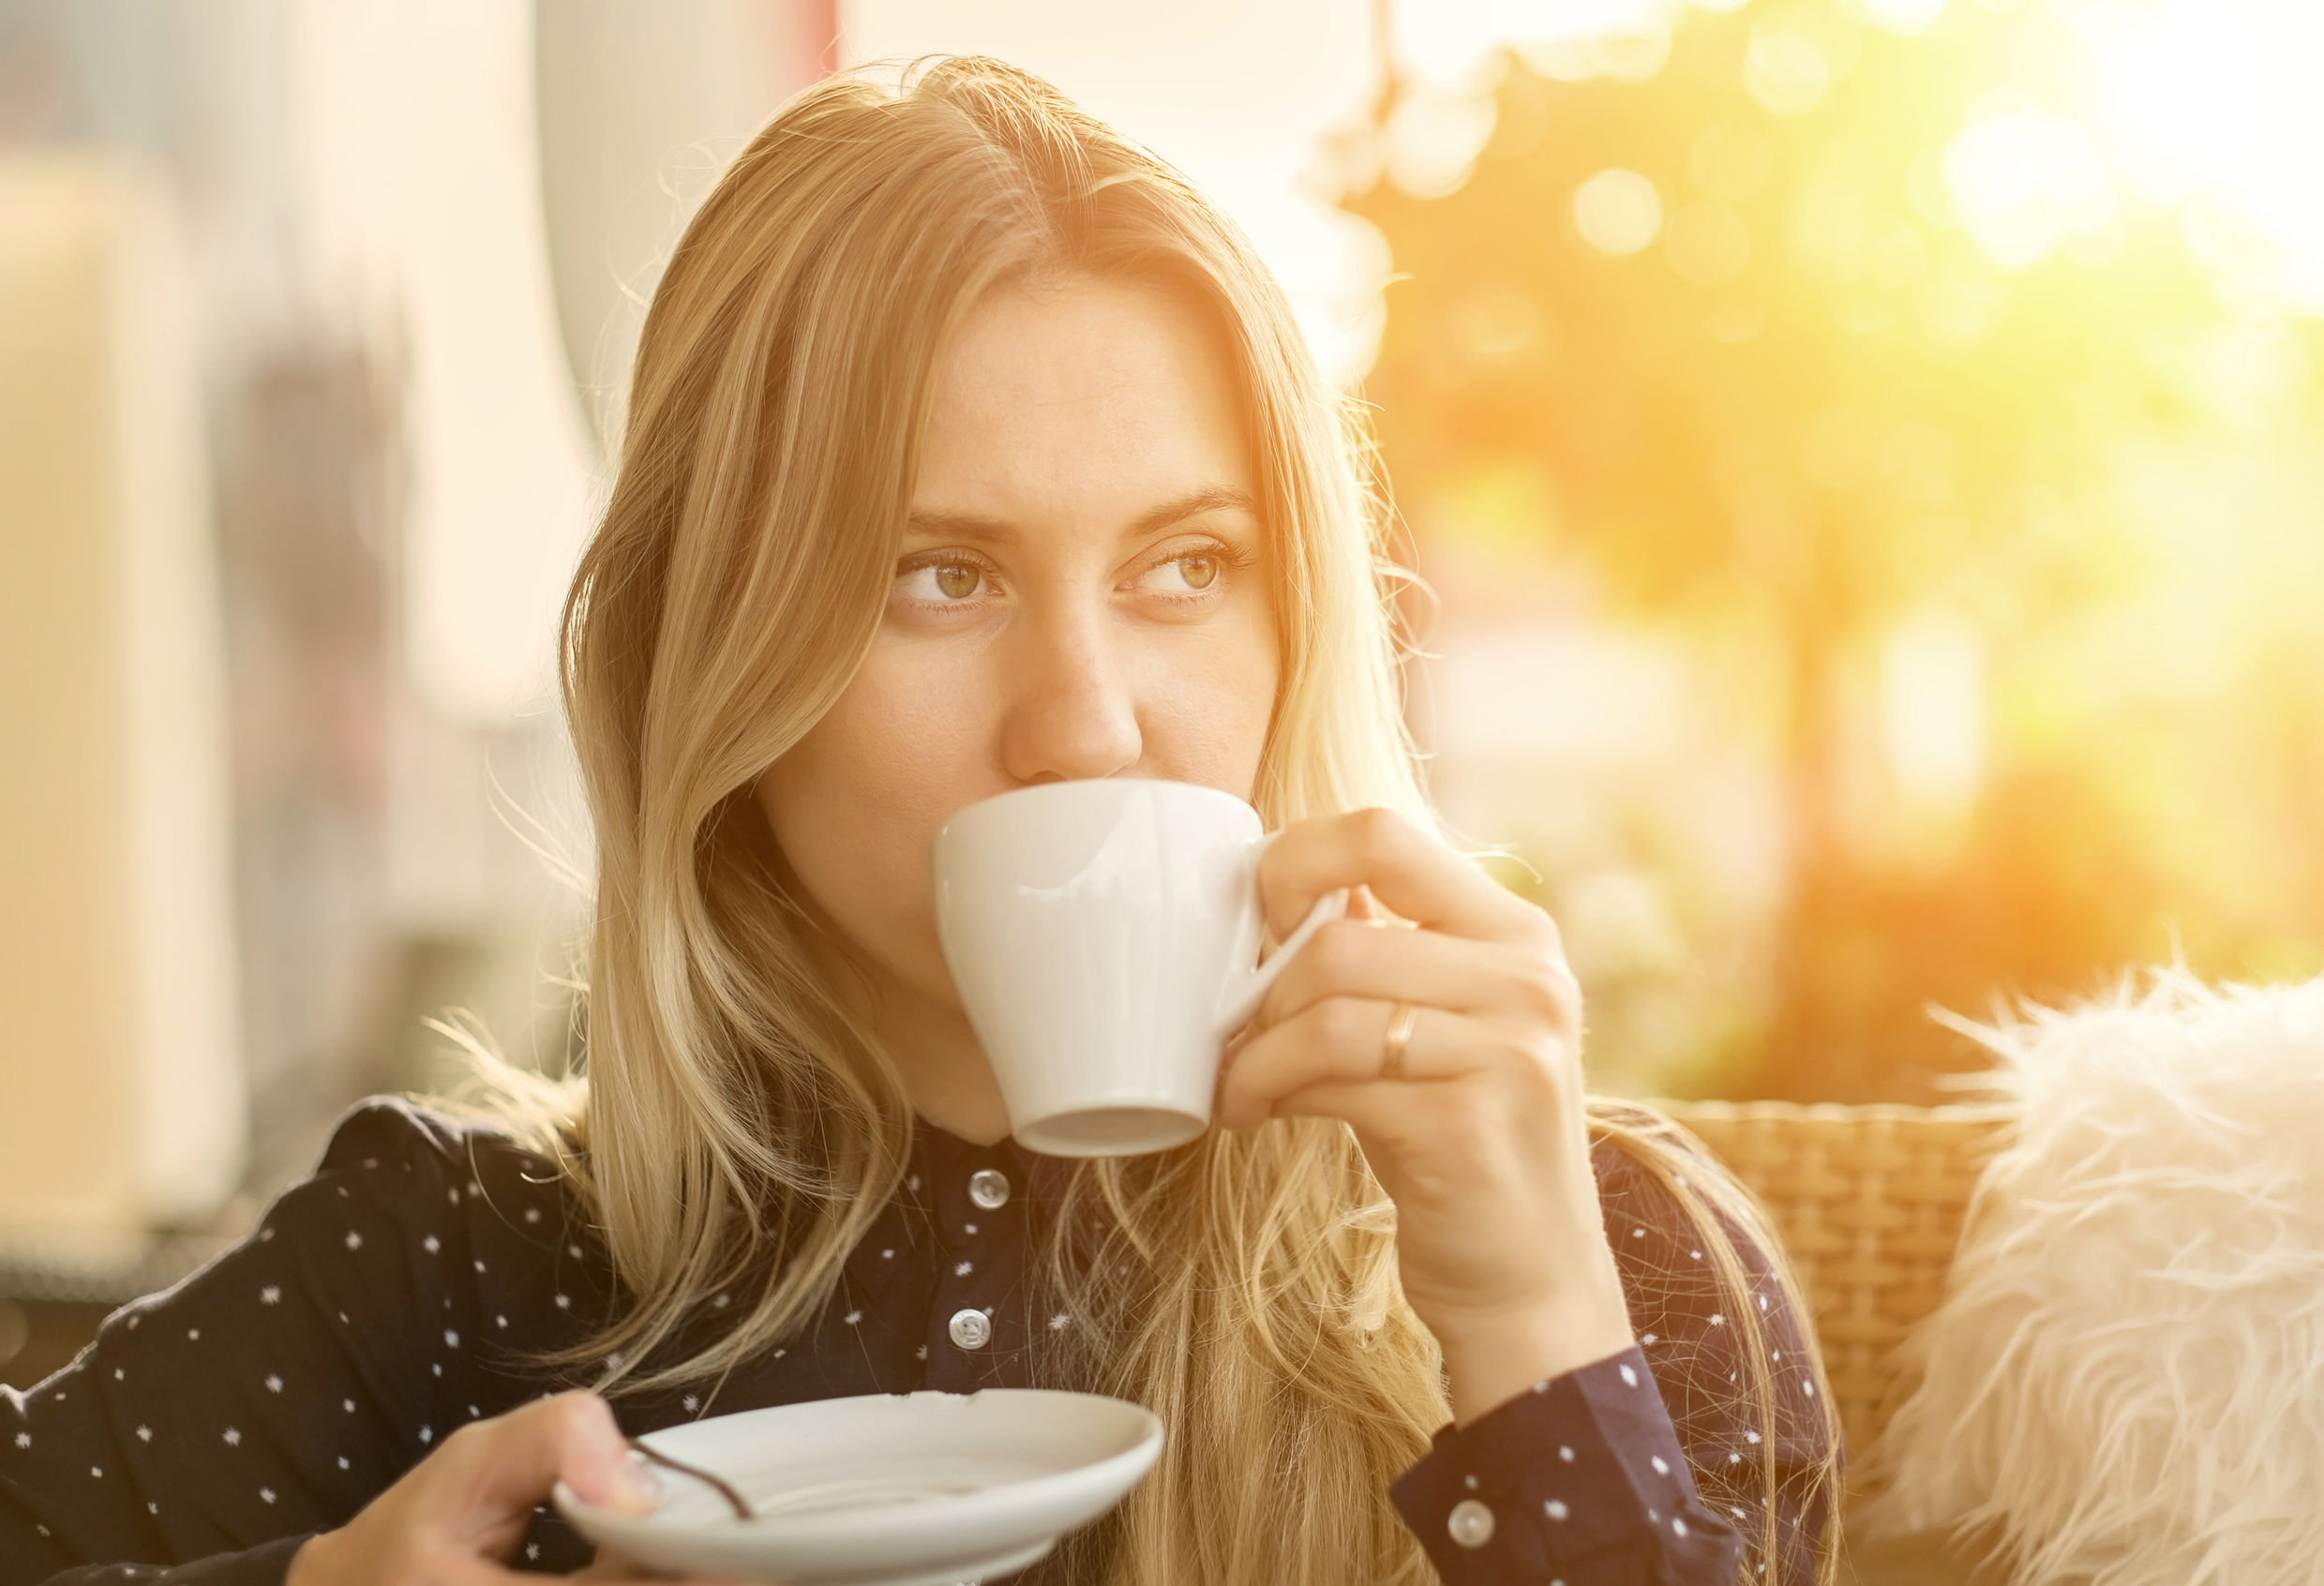 45957792 - beautiful blonde female drink coffee in cafe